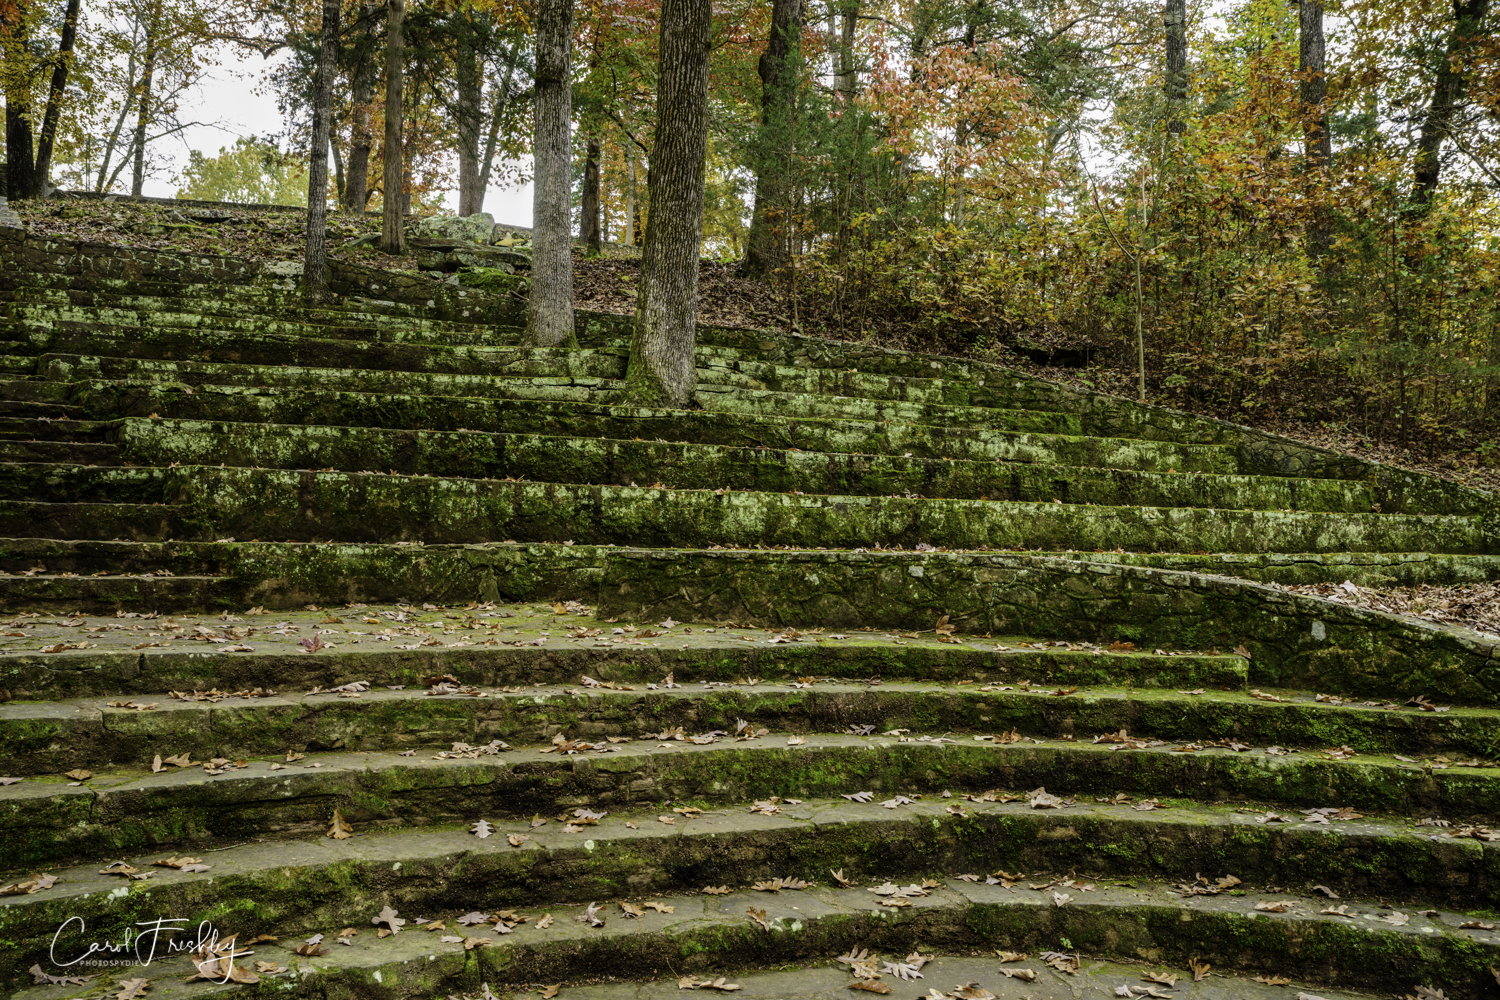 The amphitheater seats are made of stone, of course. The lovely mossy covering does not deter people from using them.